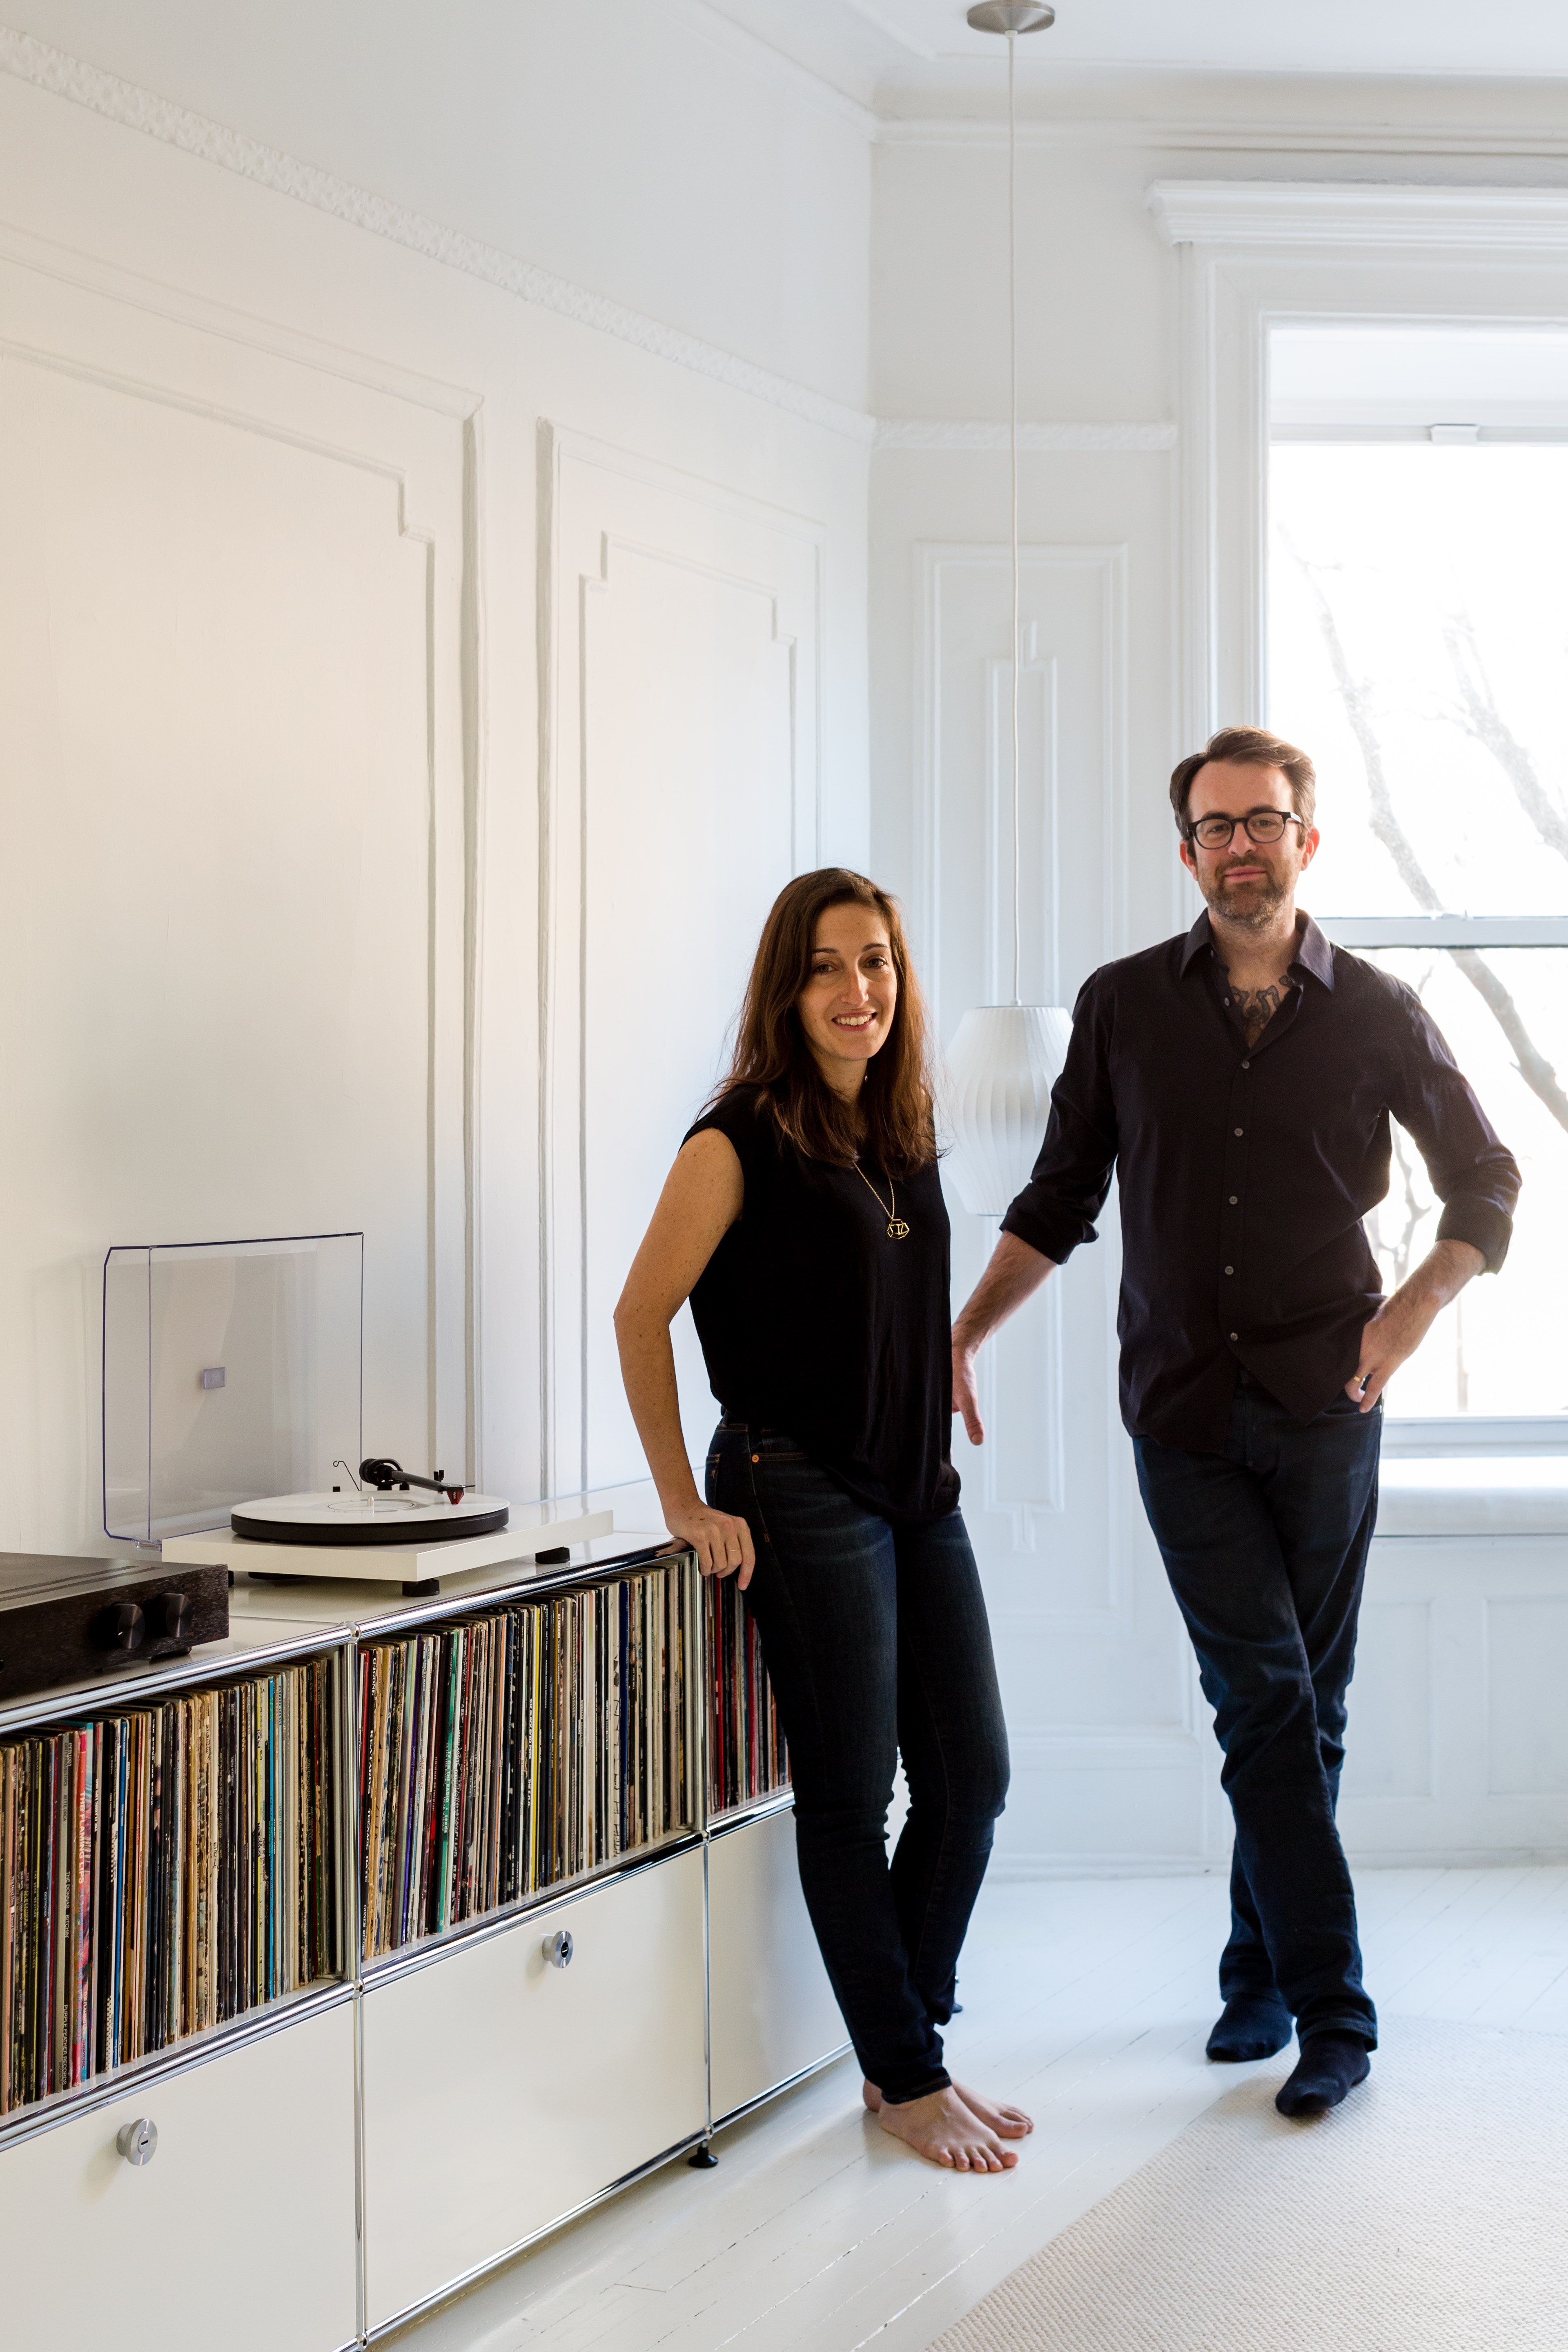 ed and barbara parker showcase their architects making use of the USM Haller media cabinet